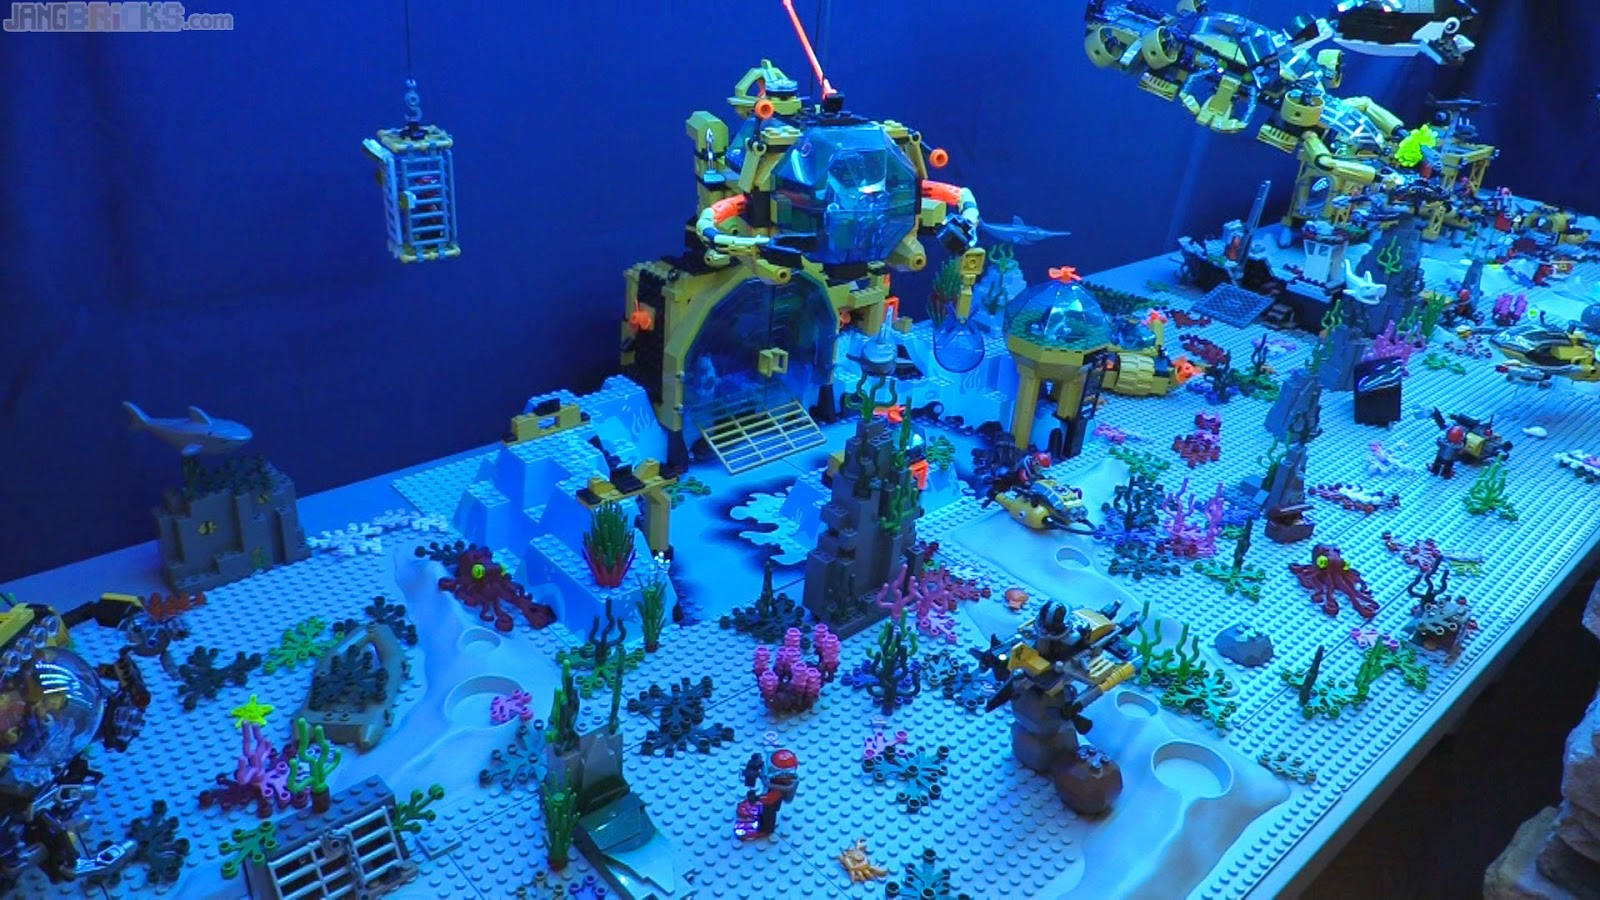 Expanded Lego Deep Sea Exploration Display